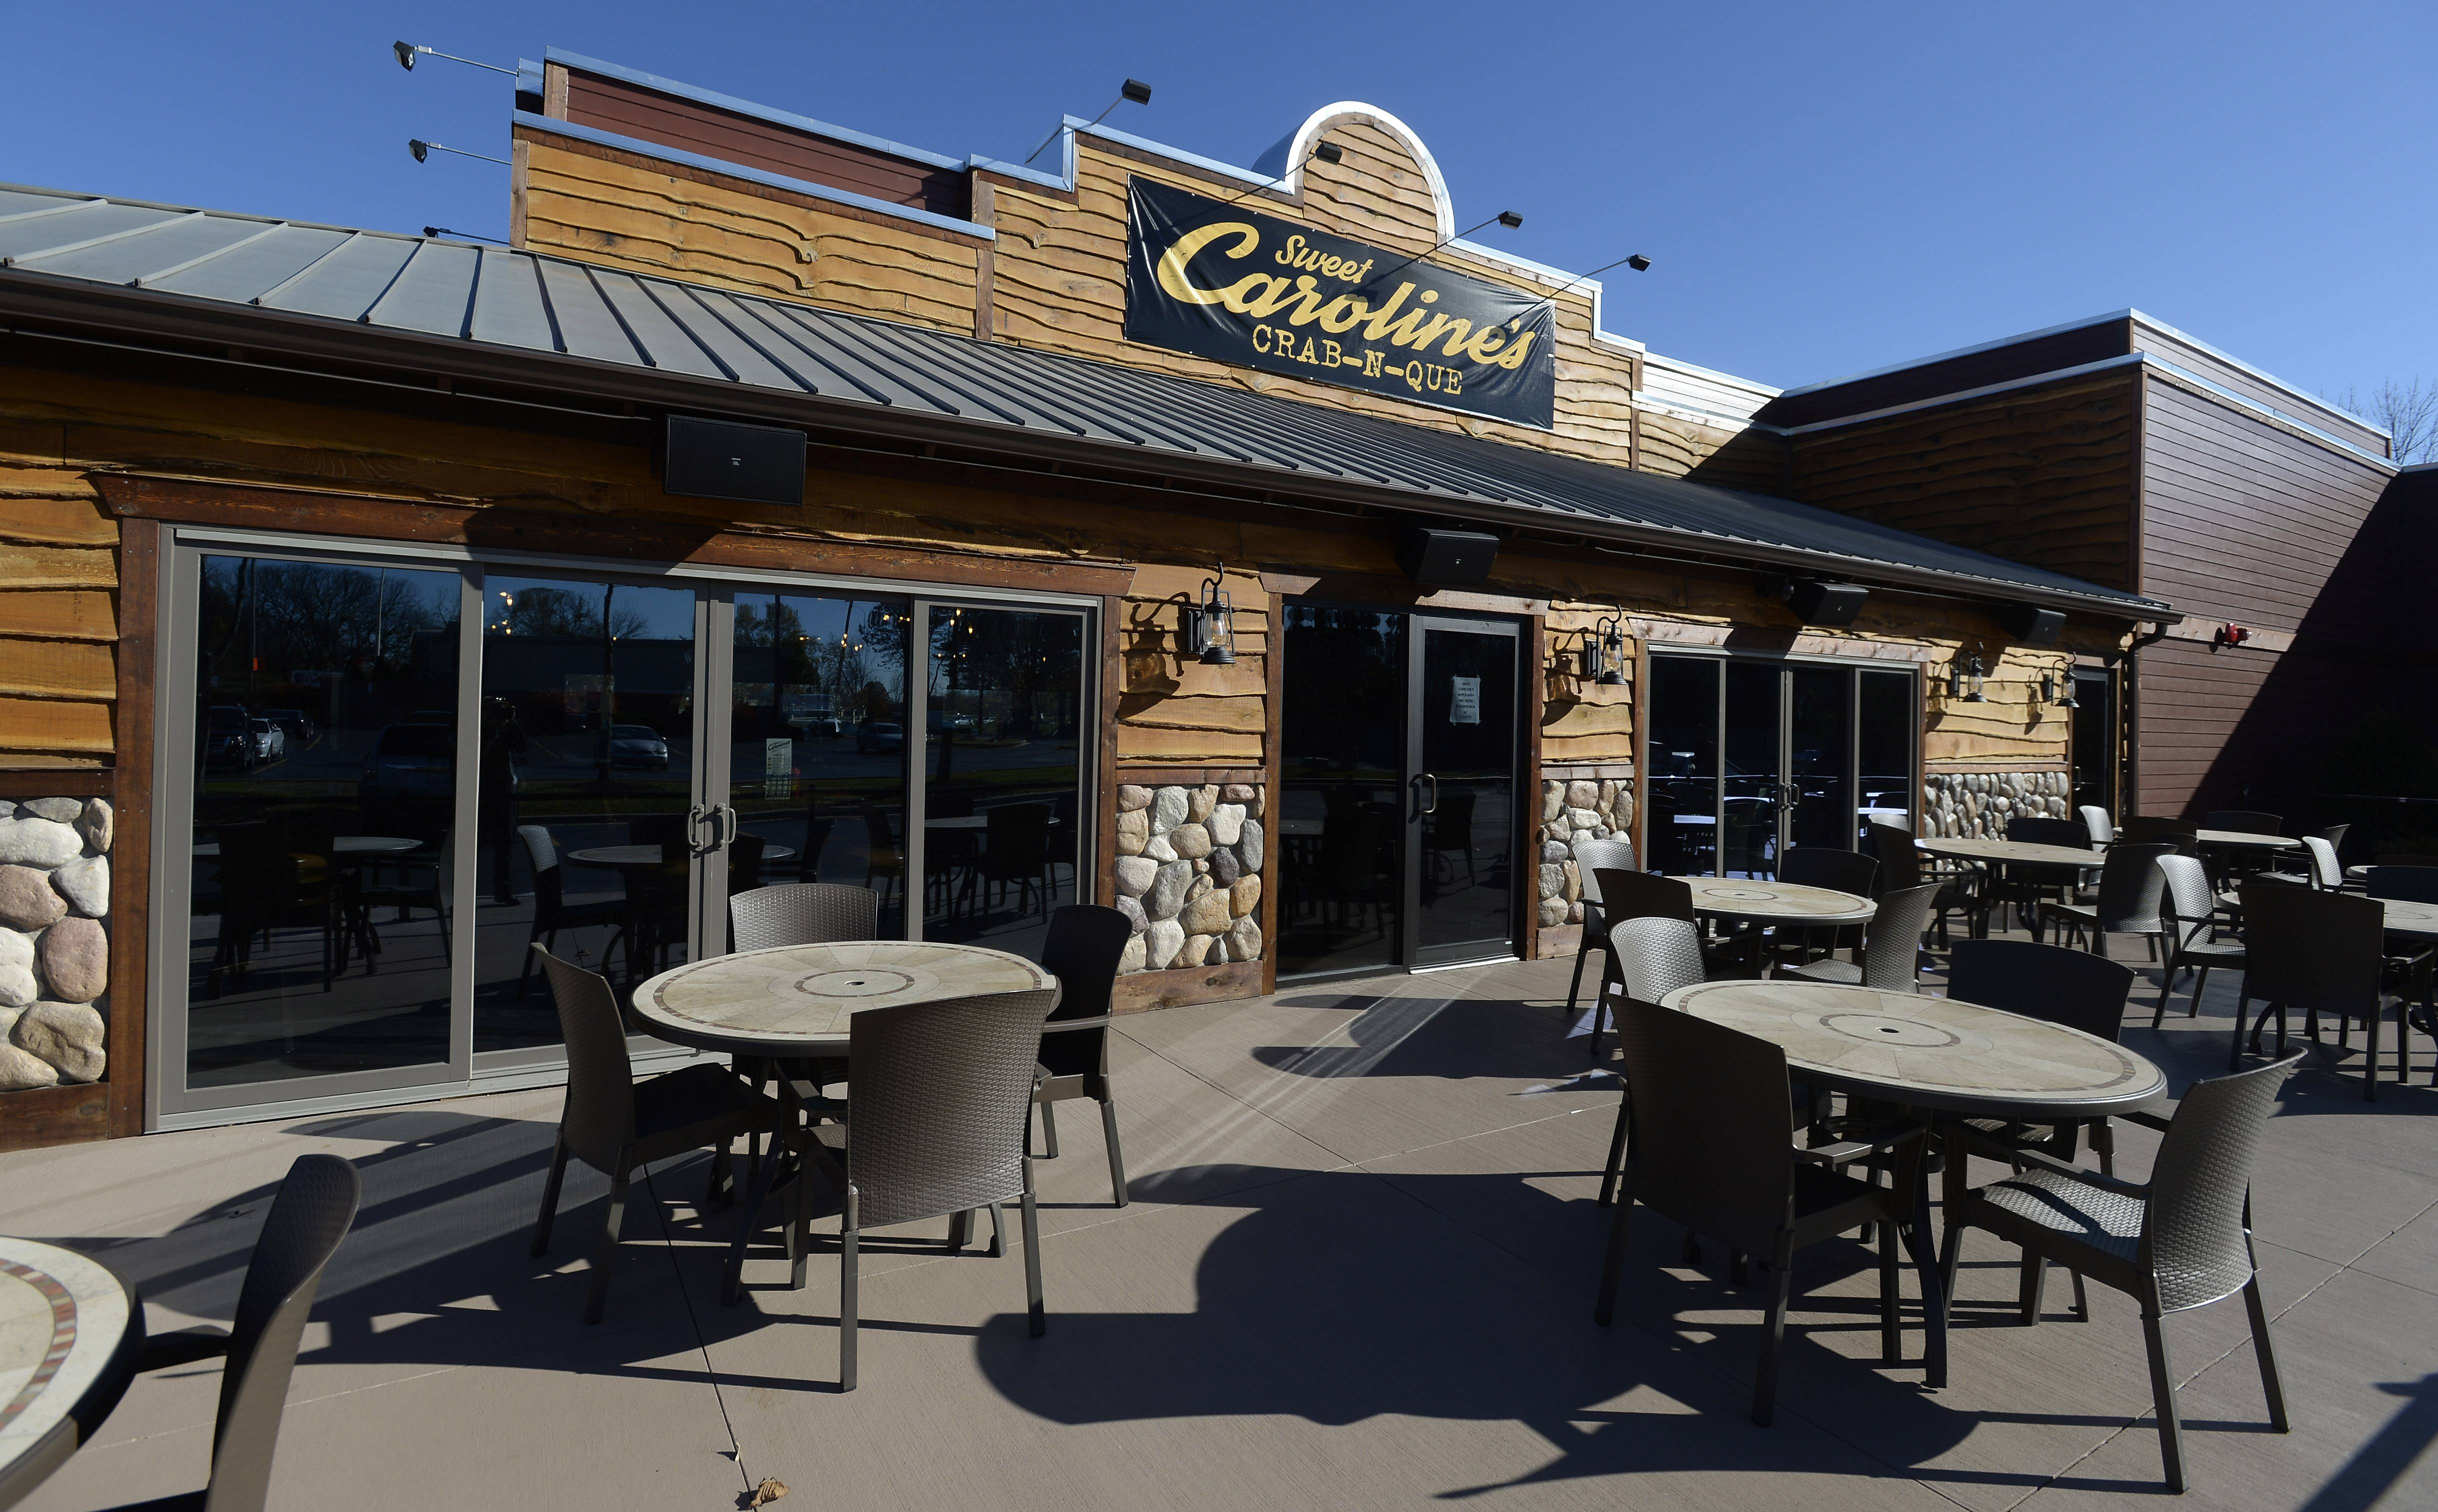 Sweet Caroline's Crab-N-Que opens Friday in Hoffman Estates